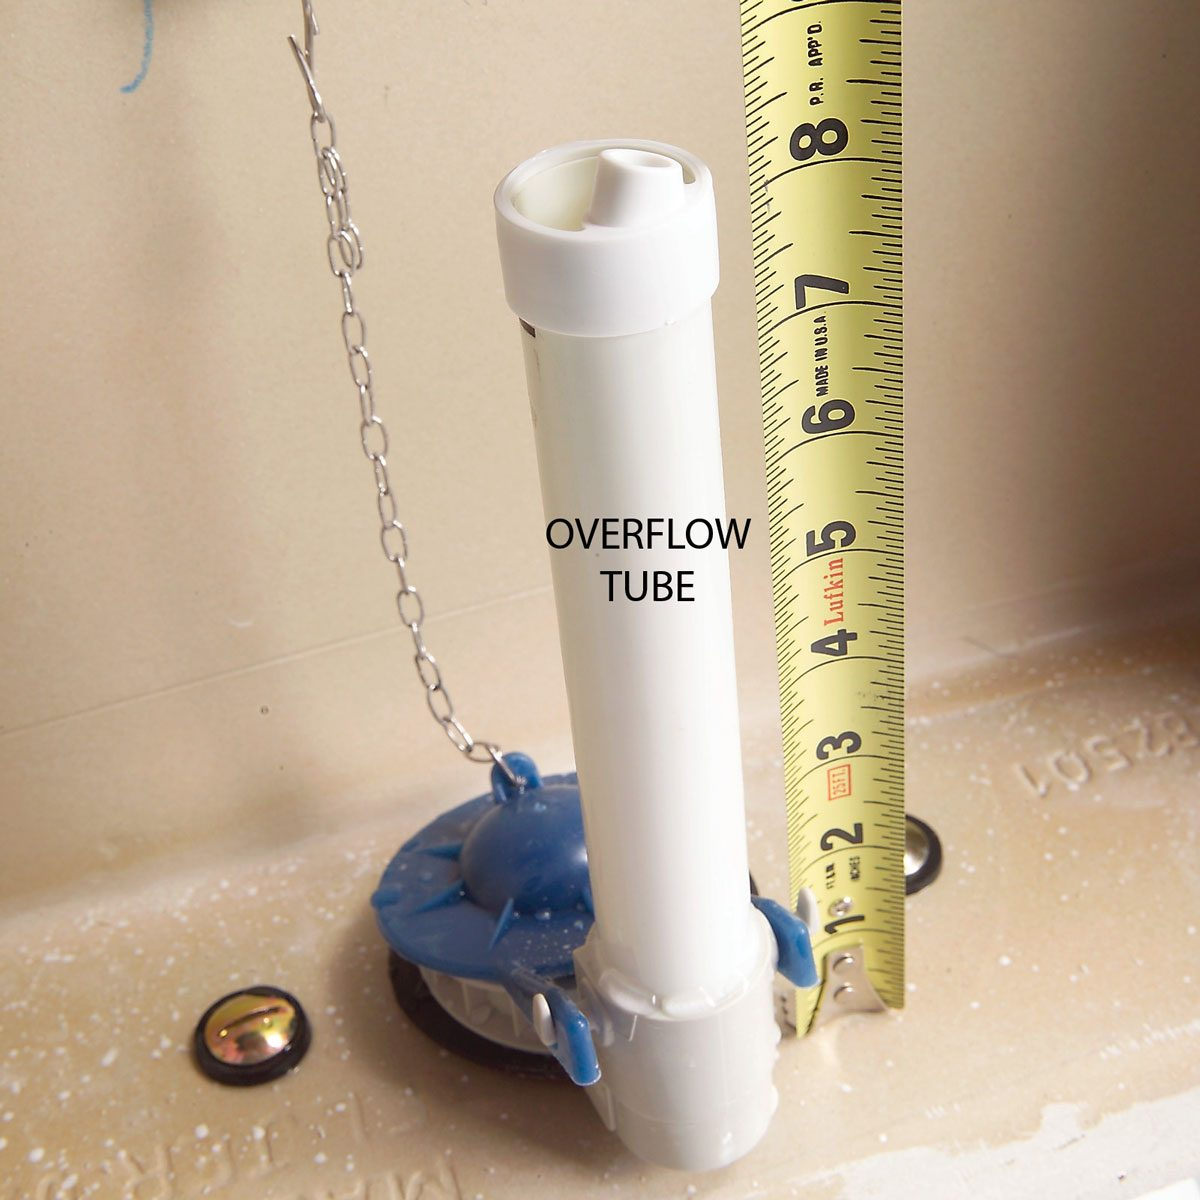 Measure the Overflow Tube